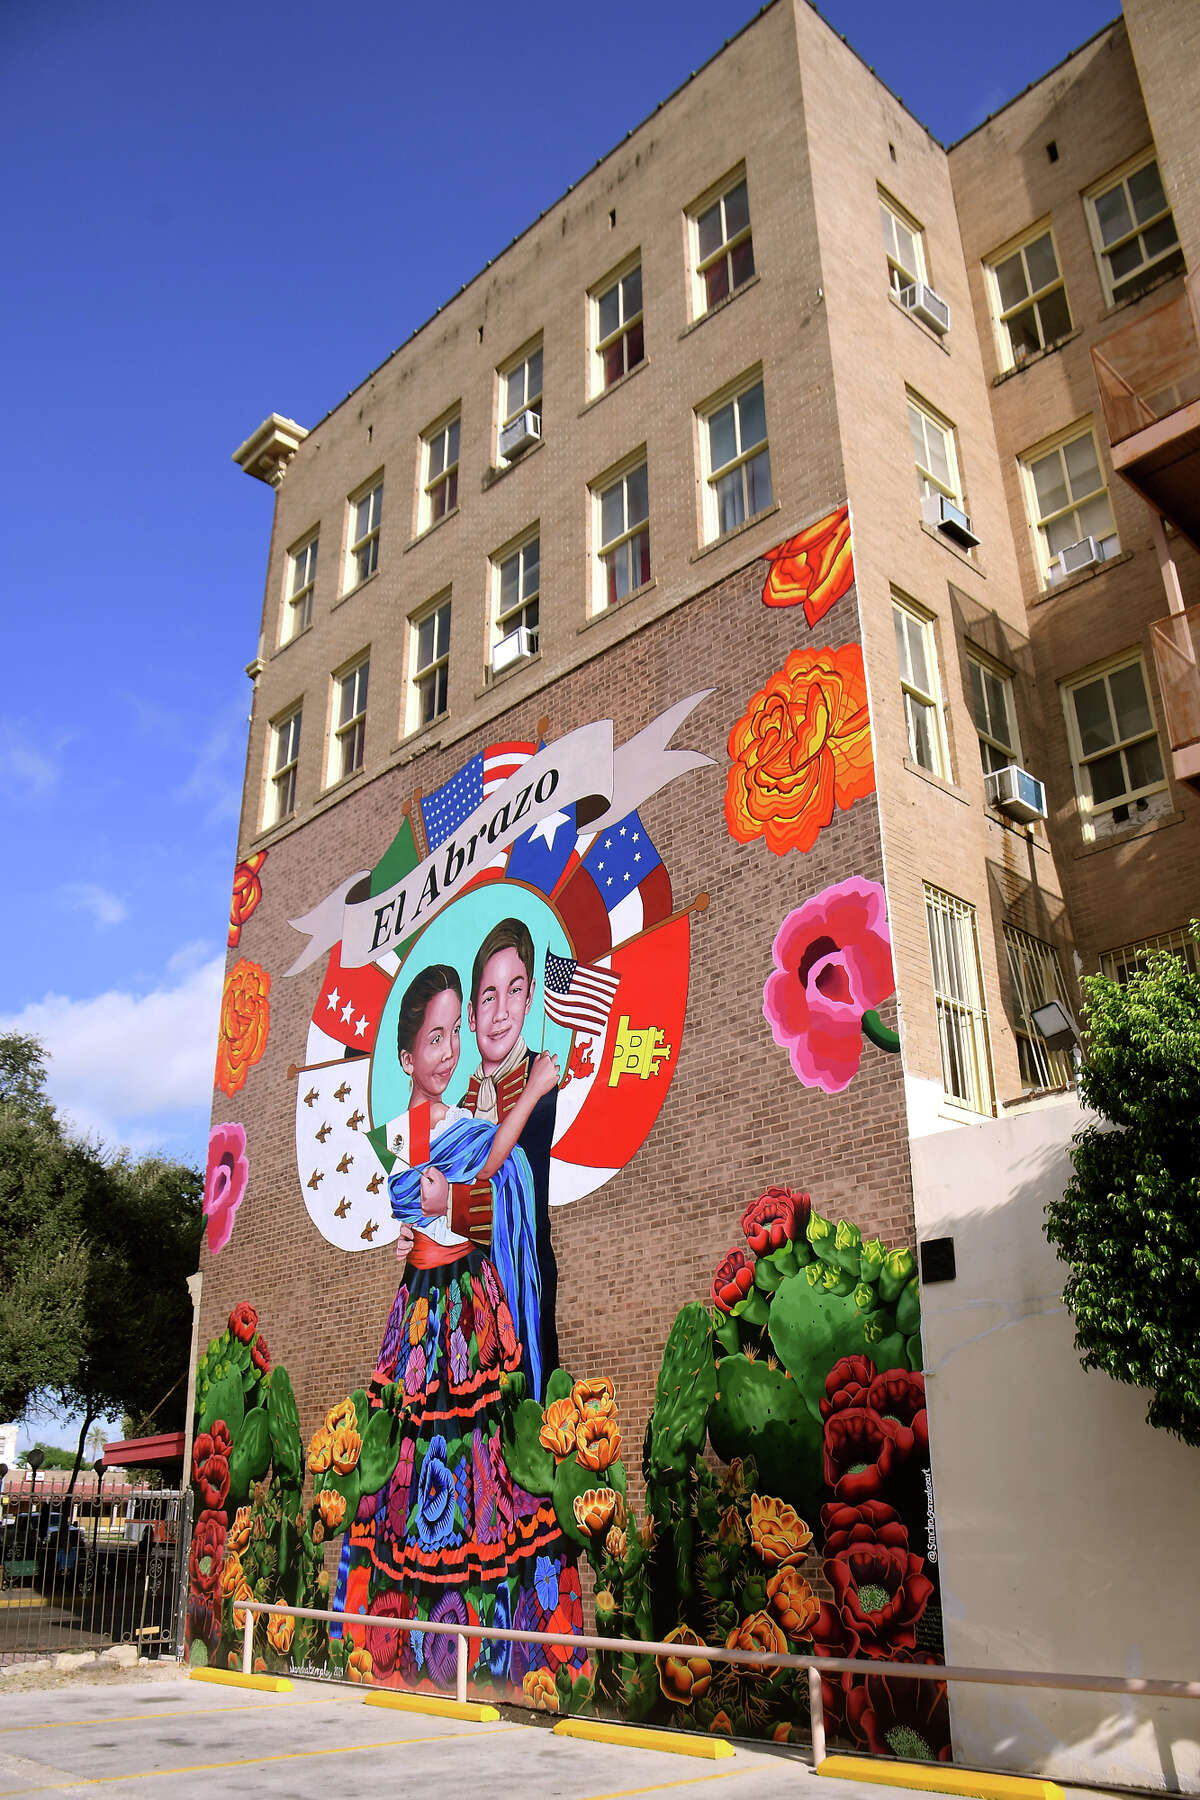 The City of Laredo and District VIII Councilman Roberto Balli hosted a dedication ceremony for recently completed mural by artist Sandra Gonzalez at the Rialto Hotel, Saturday, September 28, 2019.